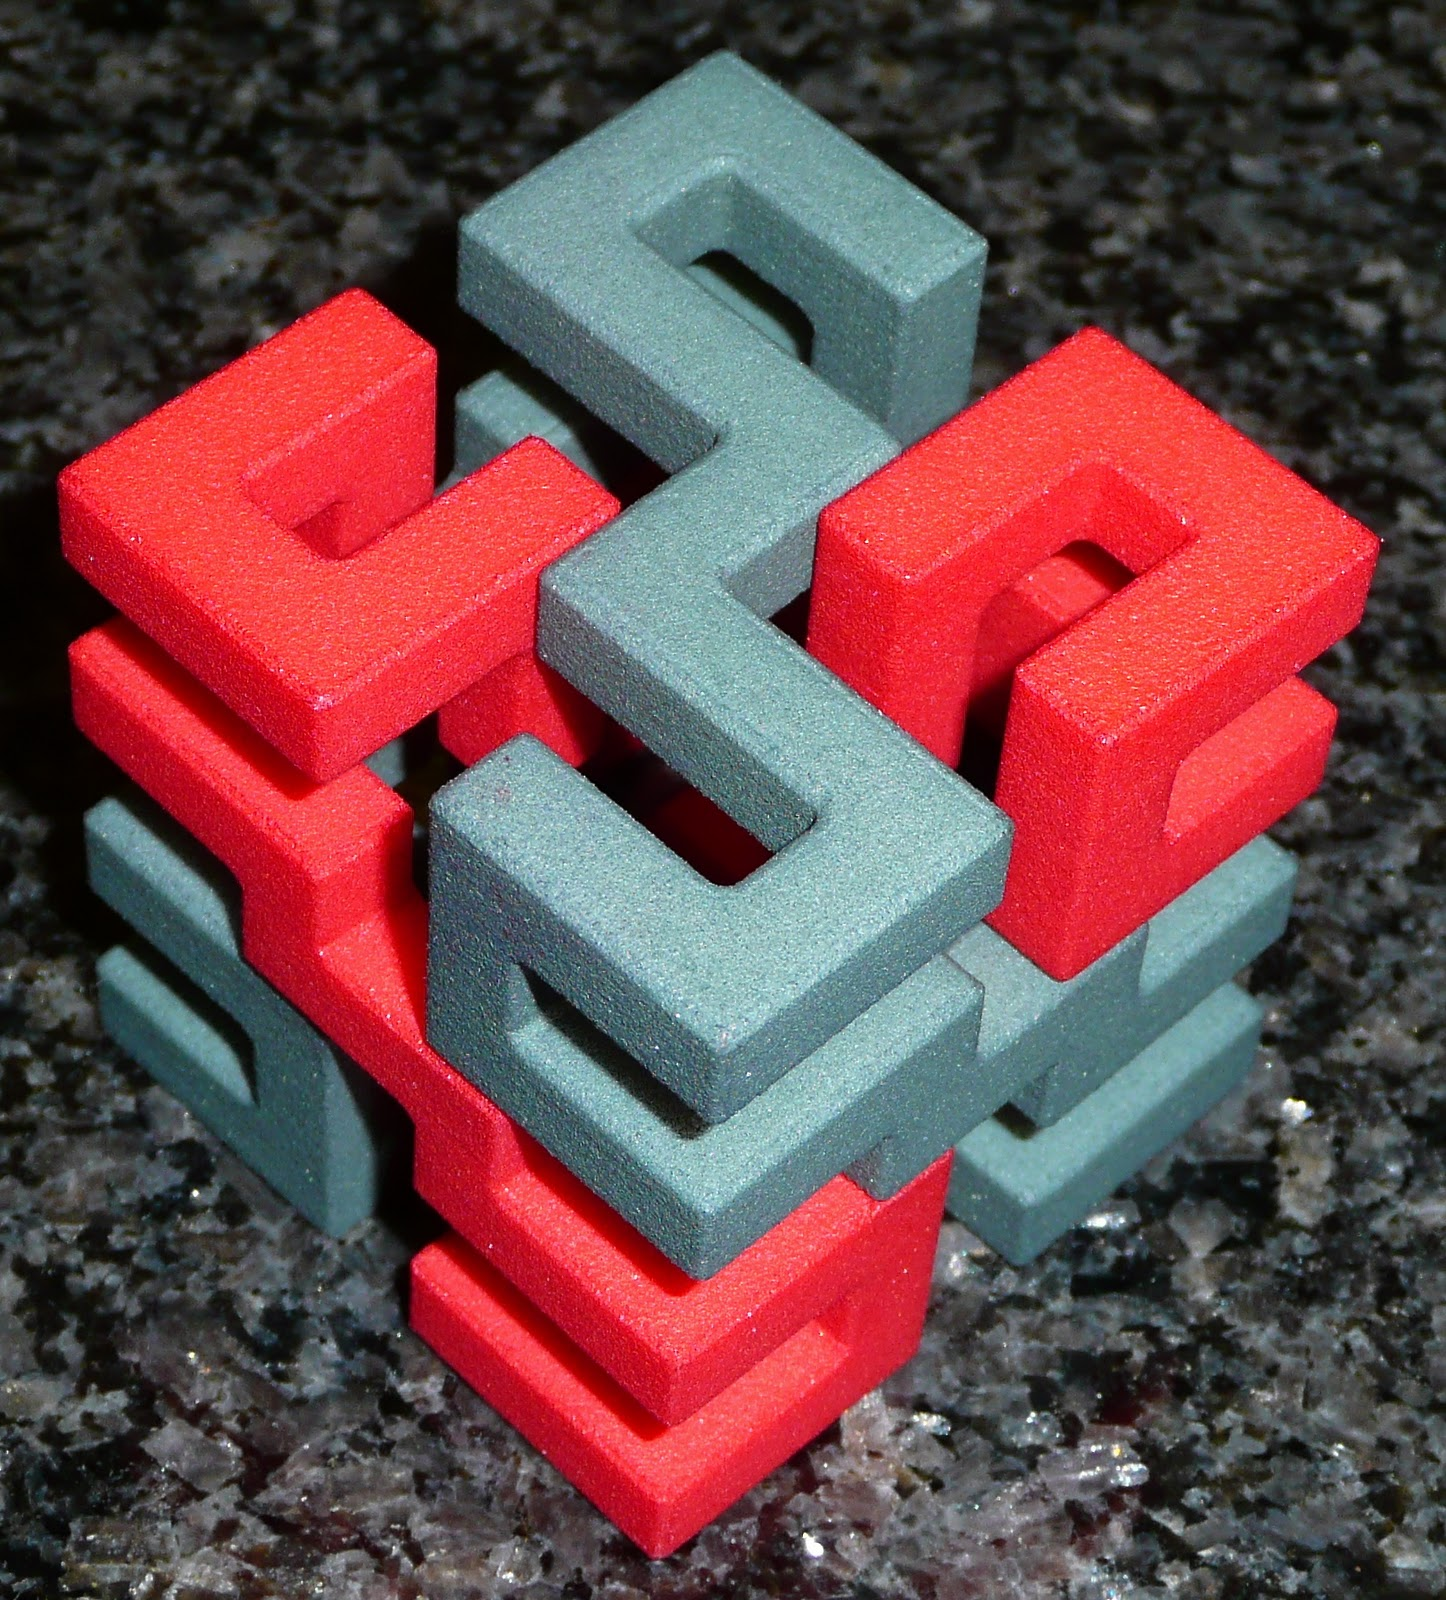 PuzzleMad: Superstrings from Microcubology